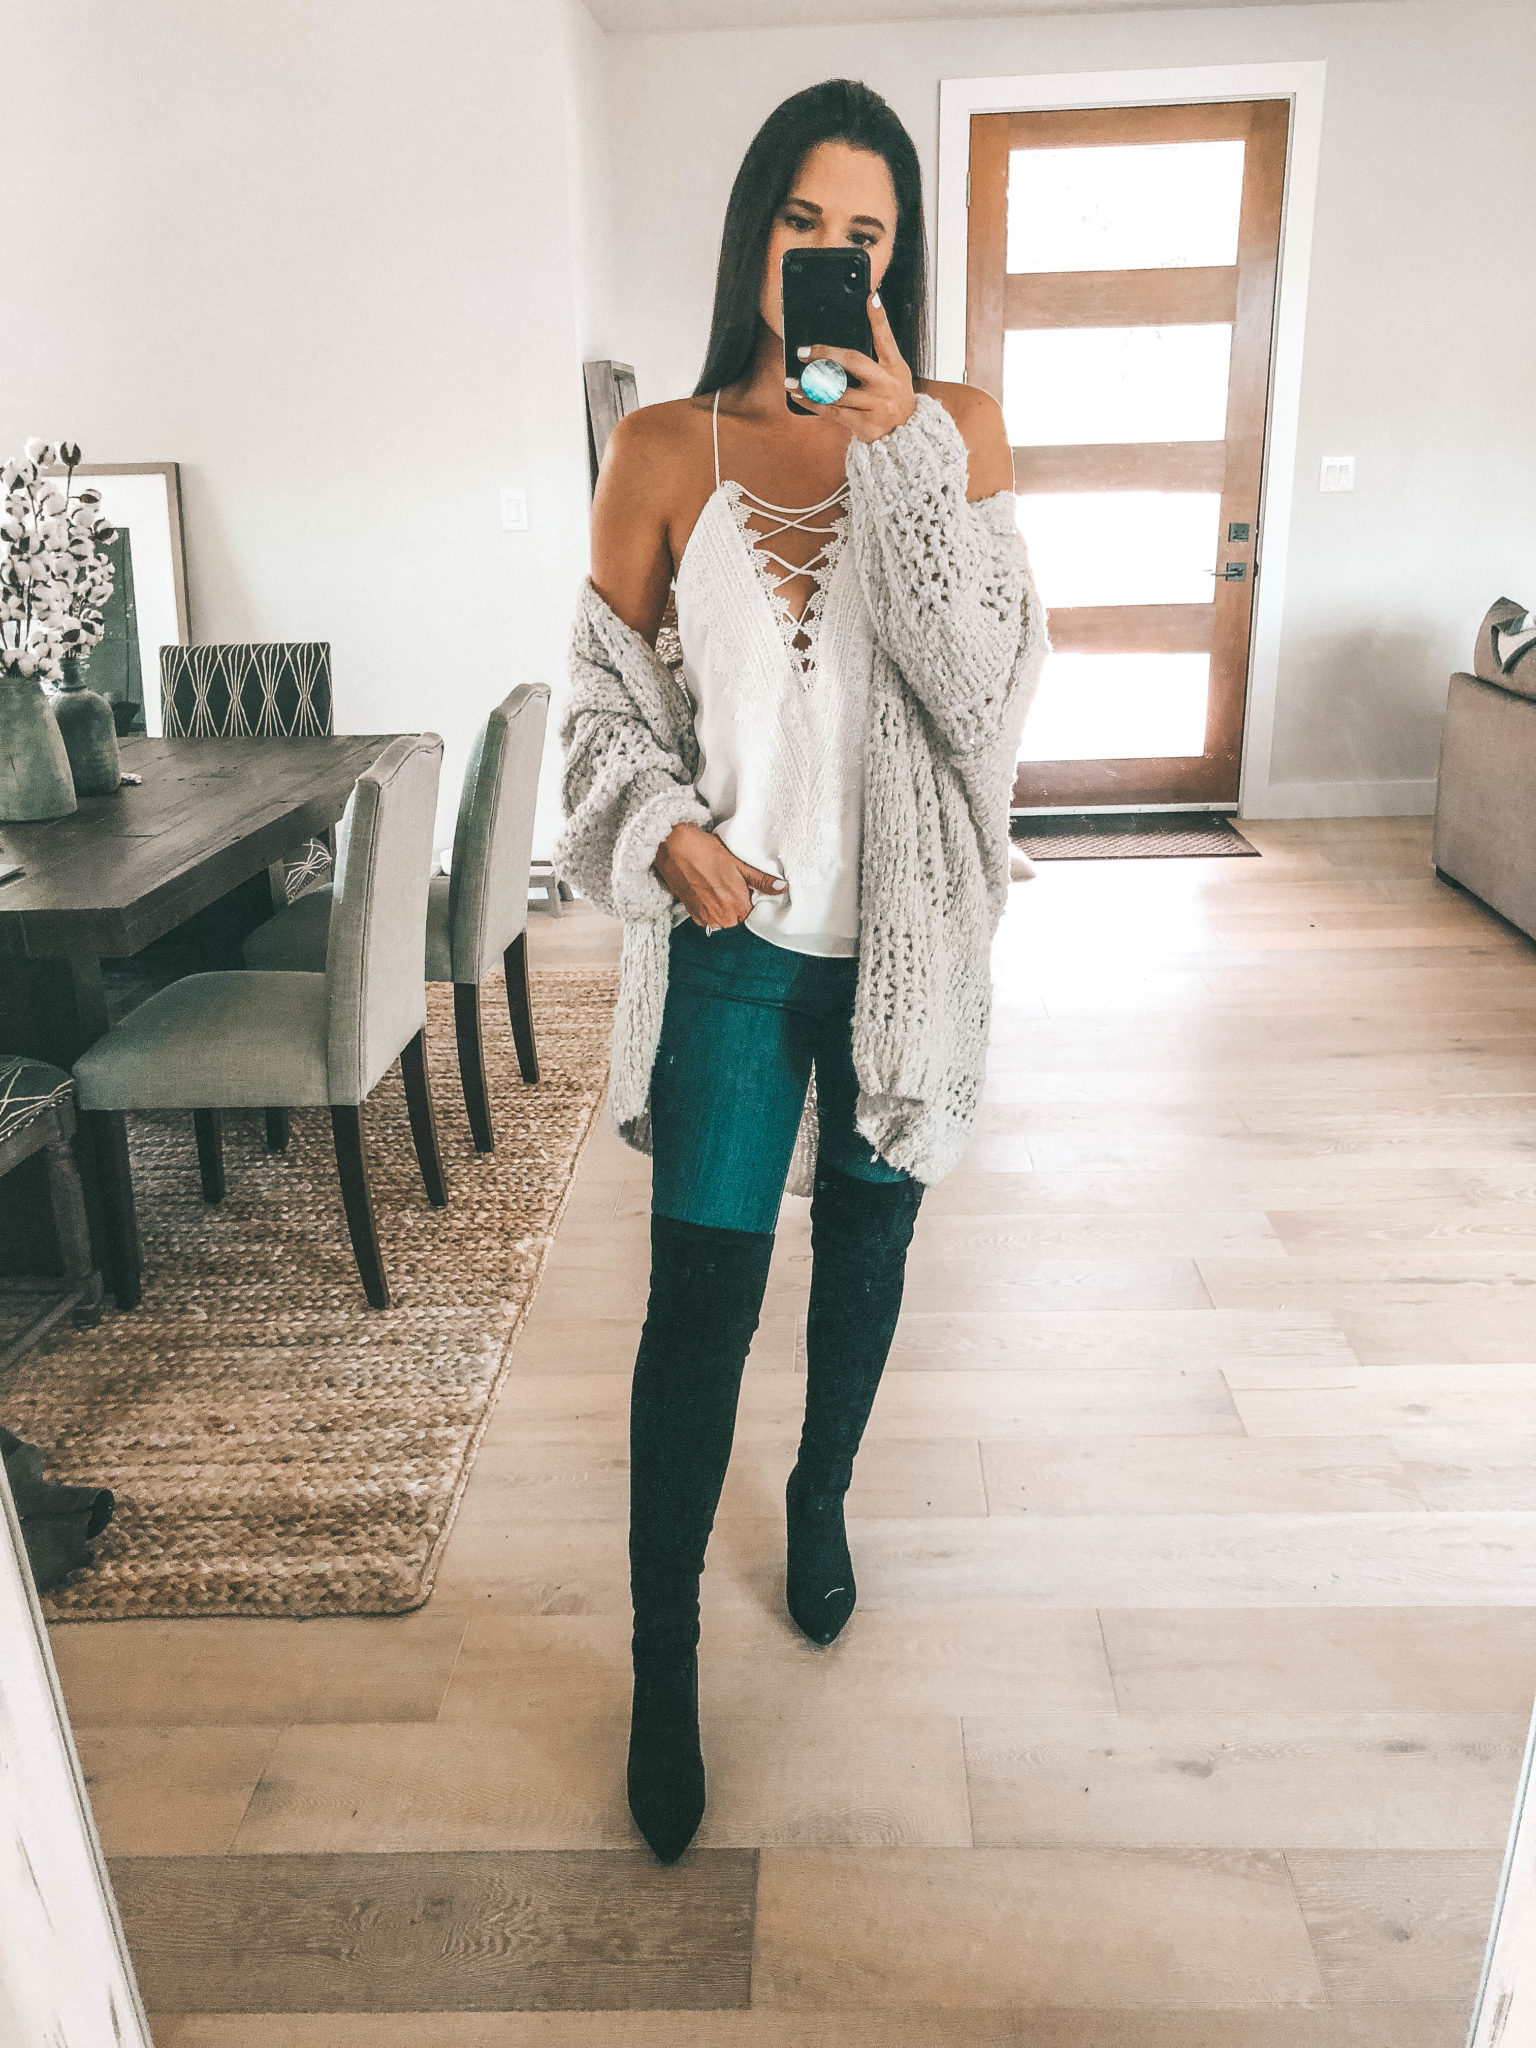 #nsale #cardigans #sweaters #nordstrom #nordstromsale #fallstyle #winterstyle #dtkaustin - Nordstrom Anniversary Sale Sweaters + Cardigans Try-On Session featured by popular Austin fashion blogger Dressed to Kill